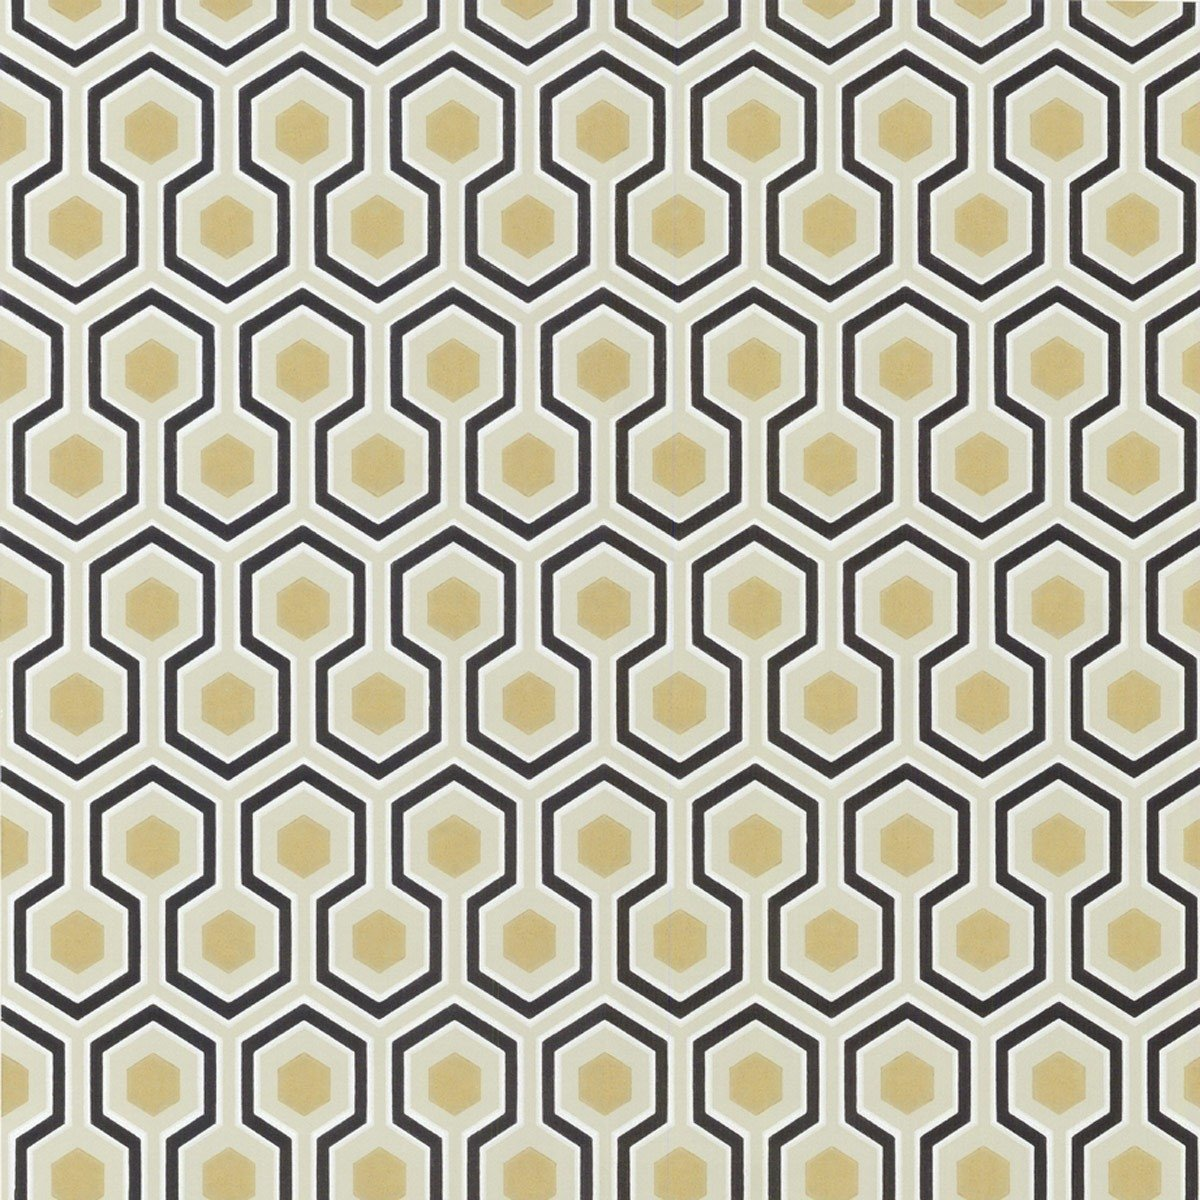 Papier peint hicks 39 hexagon cole and son - Papier peint style annee 70 ...